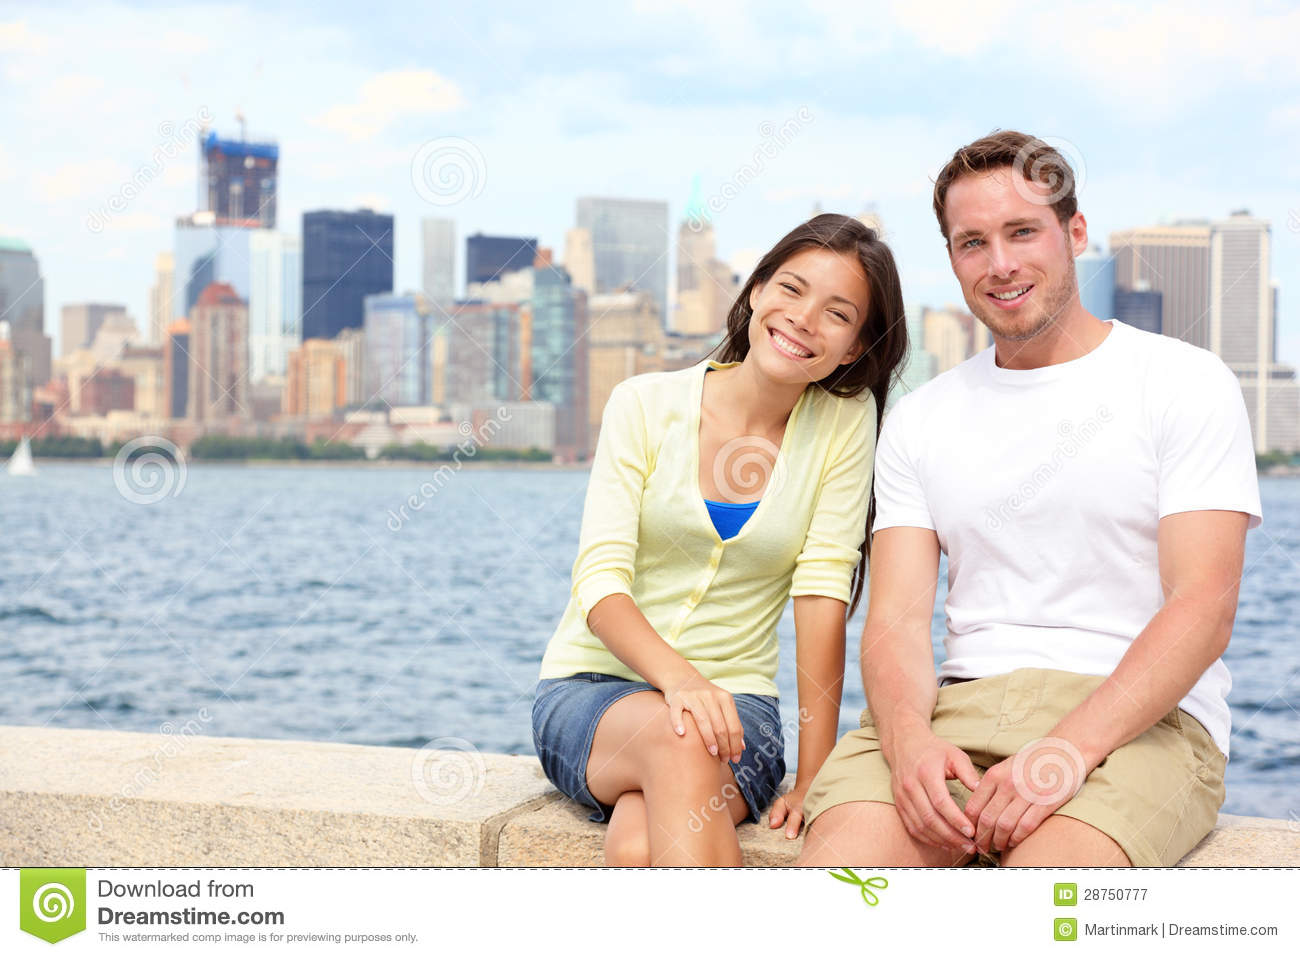 Chinese dating sites in new york